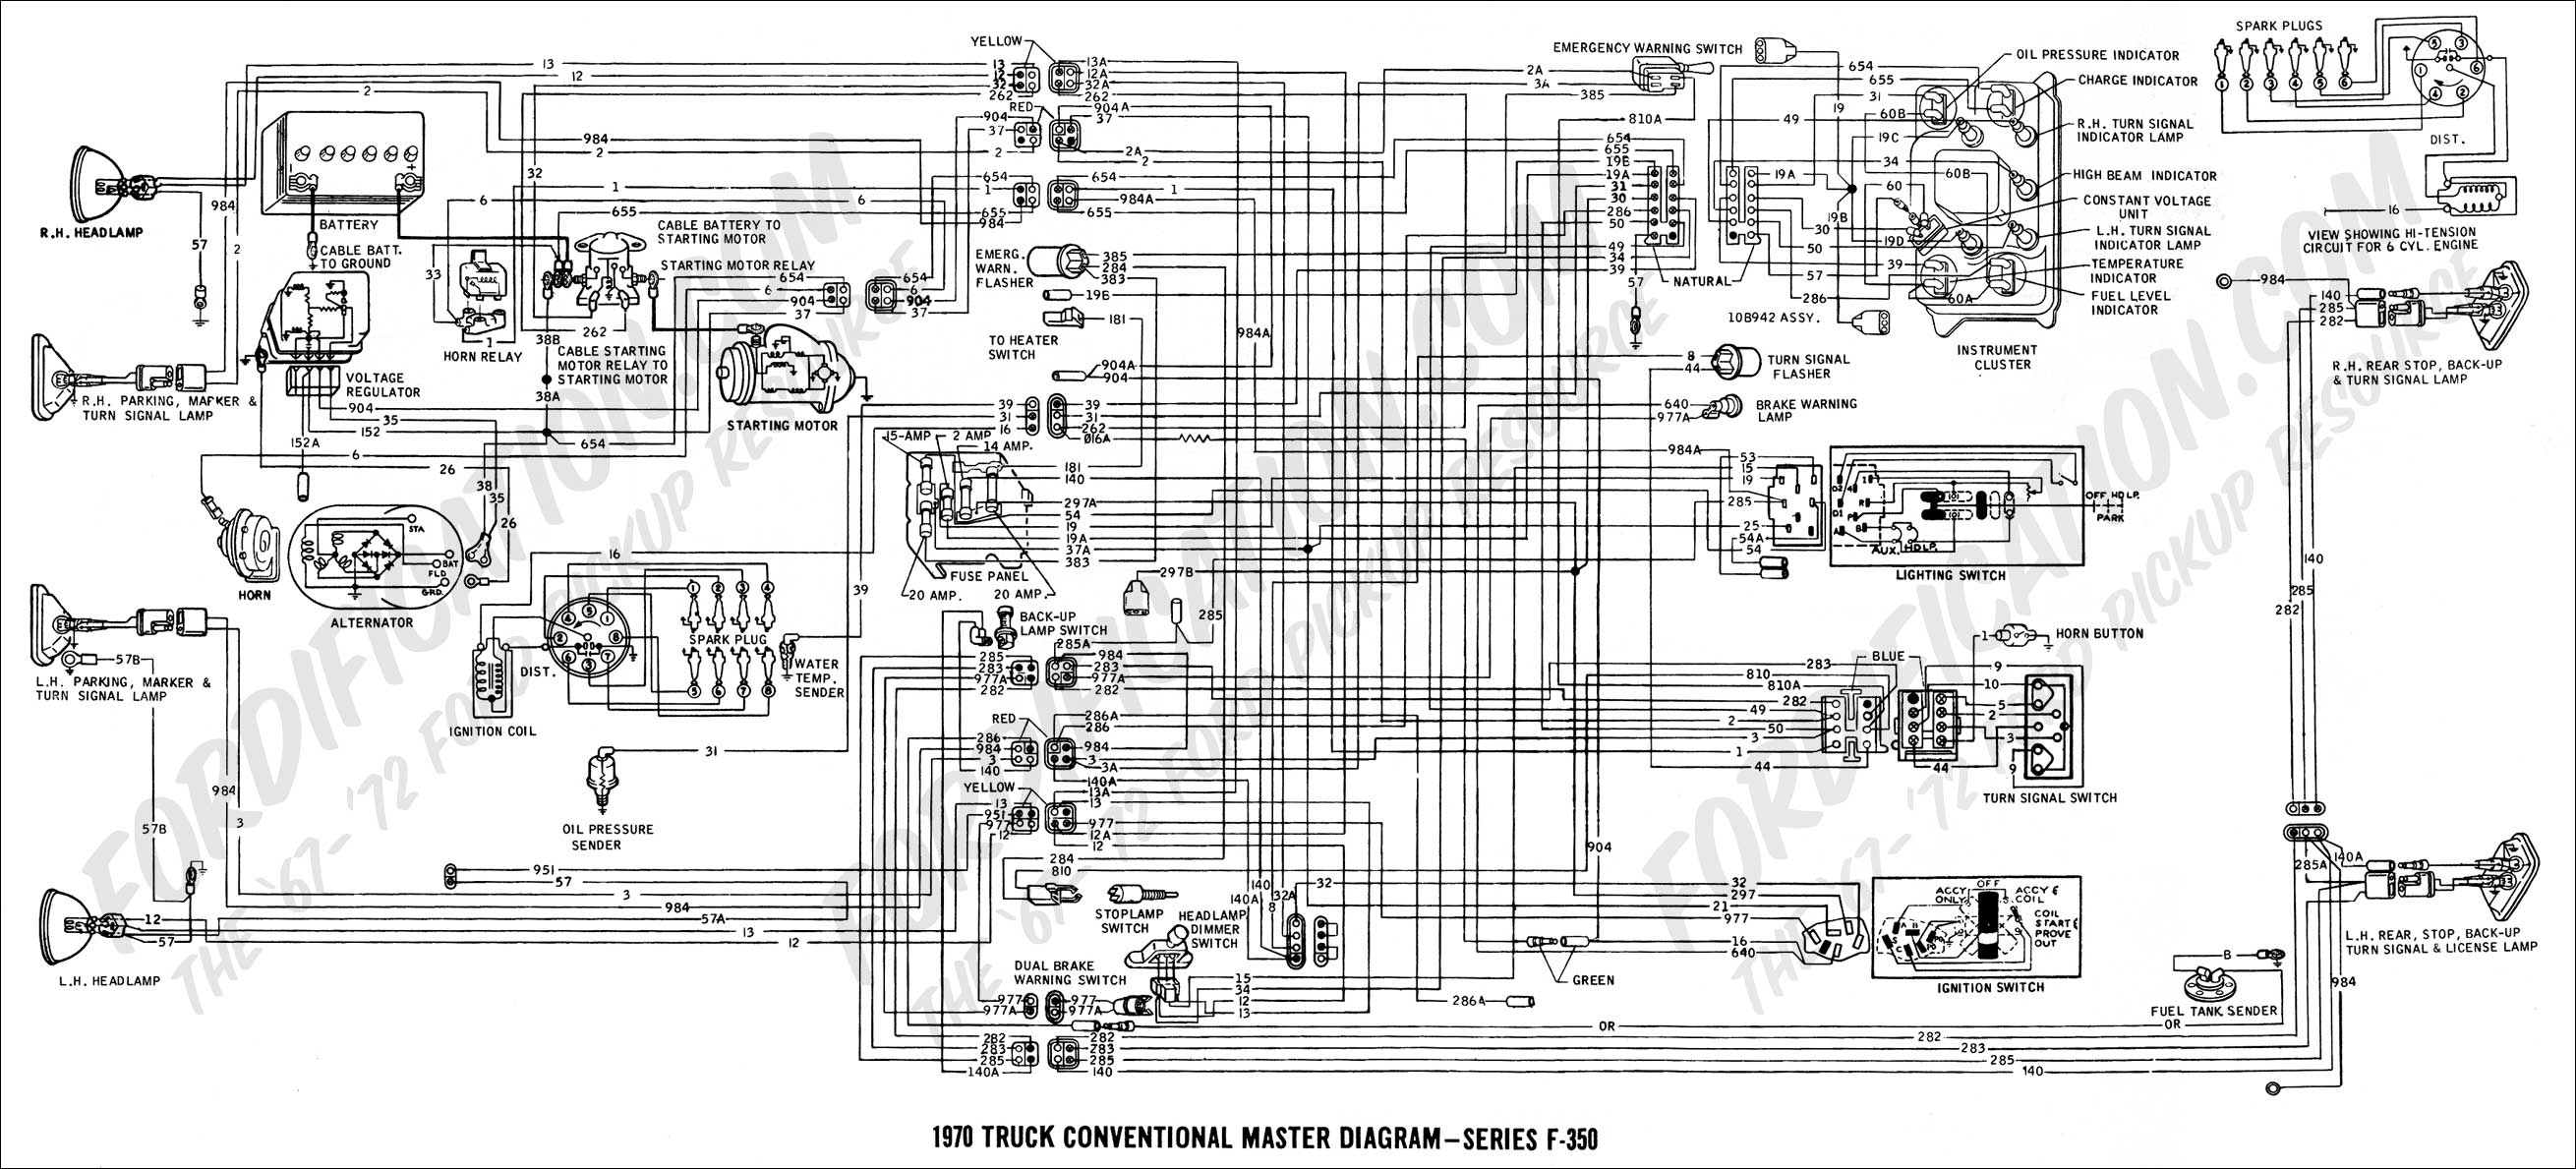 wiring diagram 70F350_master ford truck technical drawings and schematics section h wiring ford wiring schematics at crackthecode.co